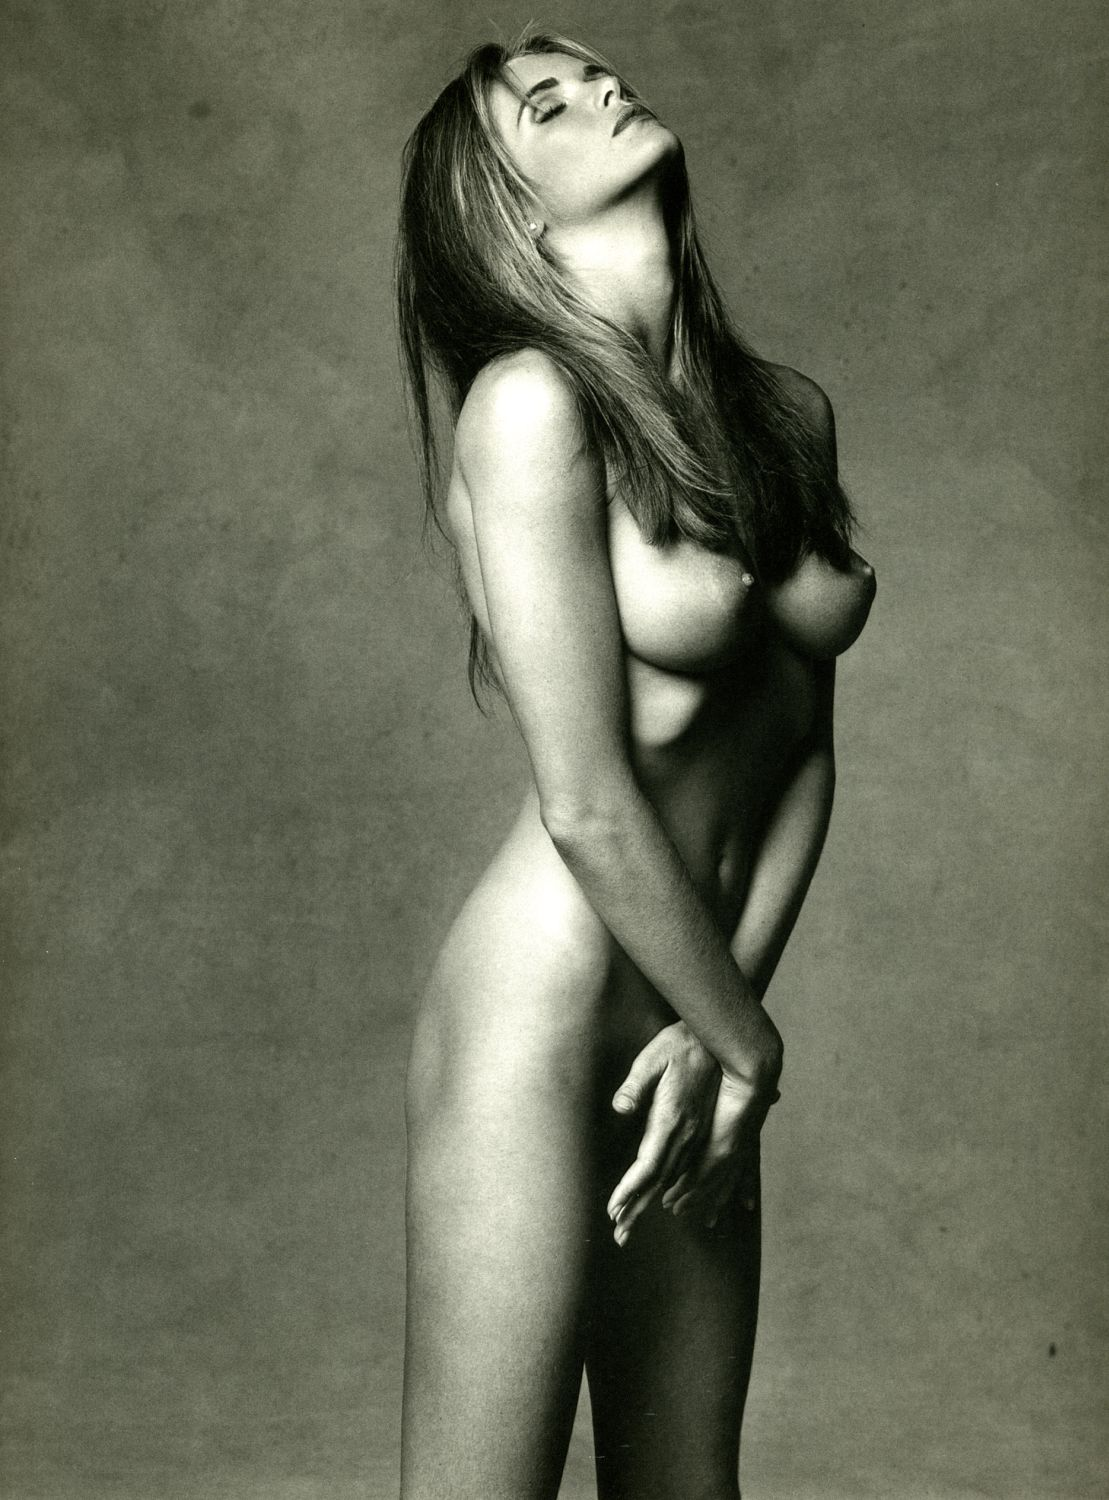 Elle macpherson nude site pic youtube pics sexy picture